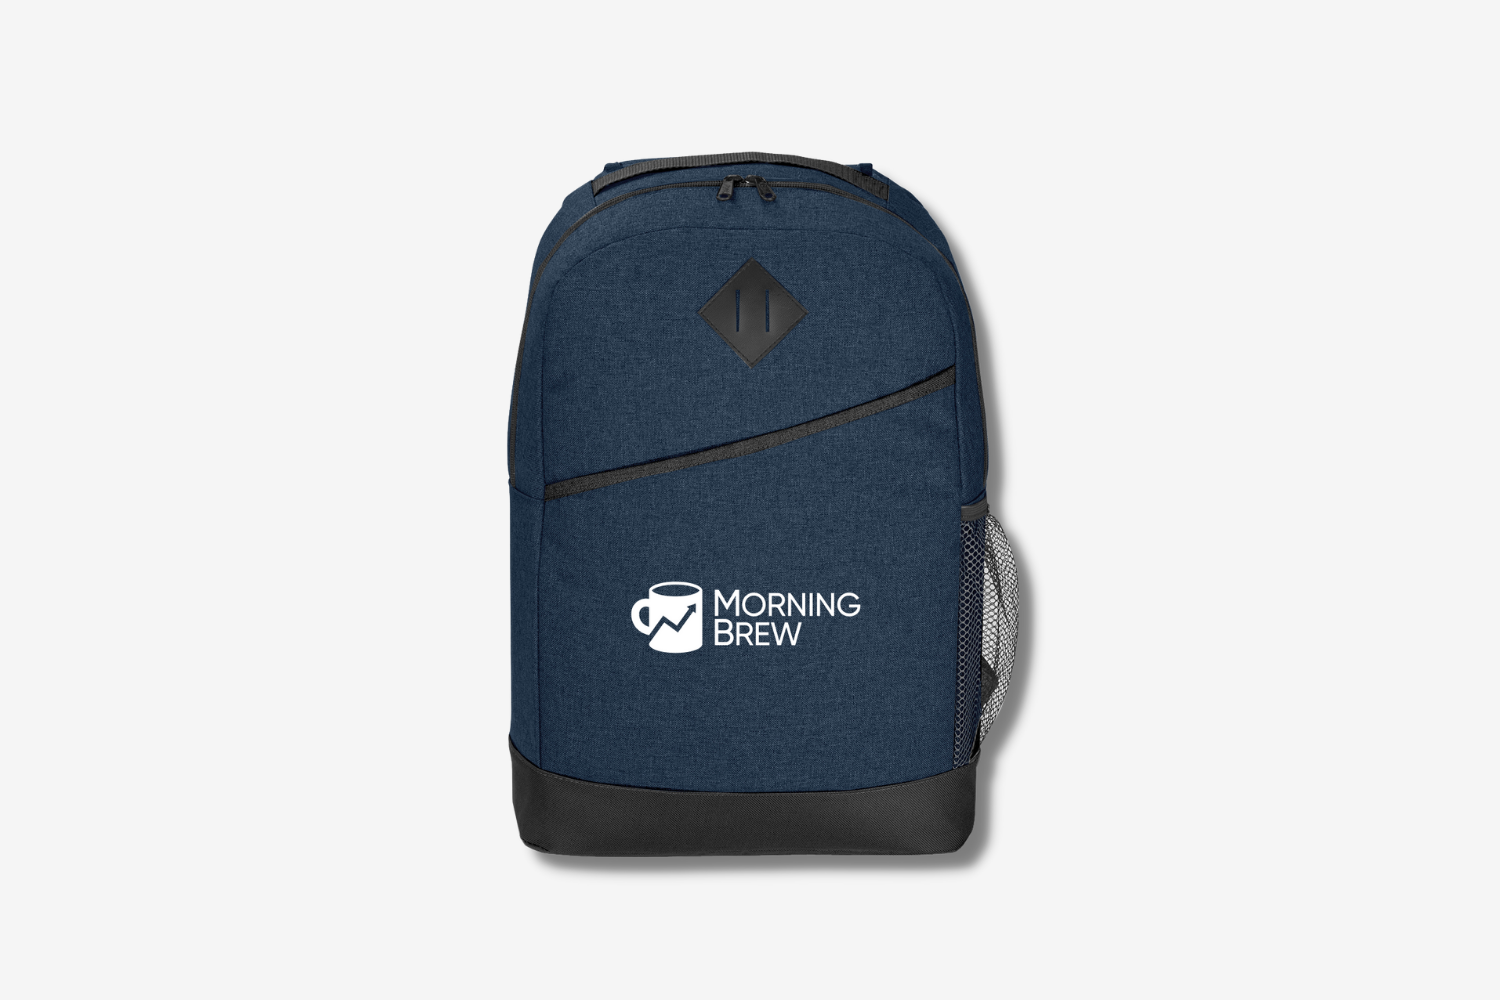 Click here to get free swag.